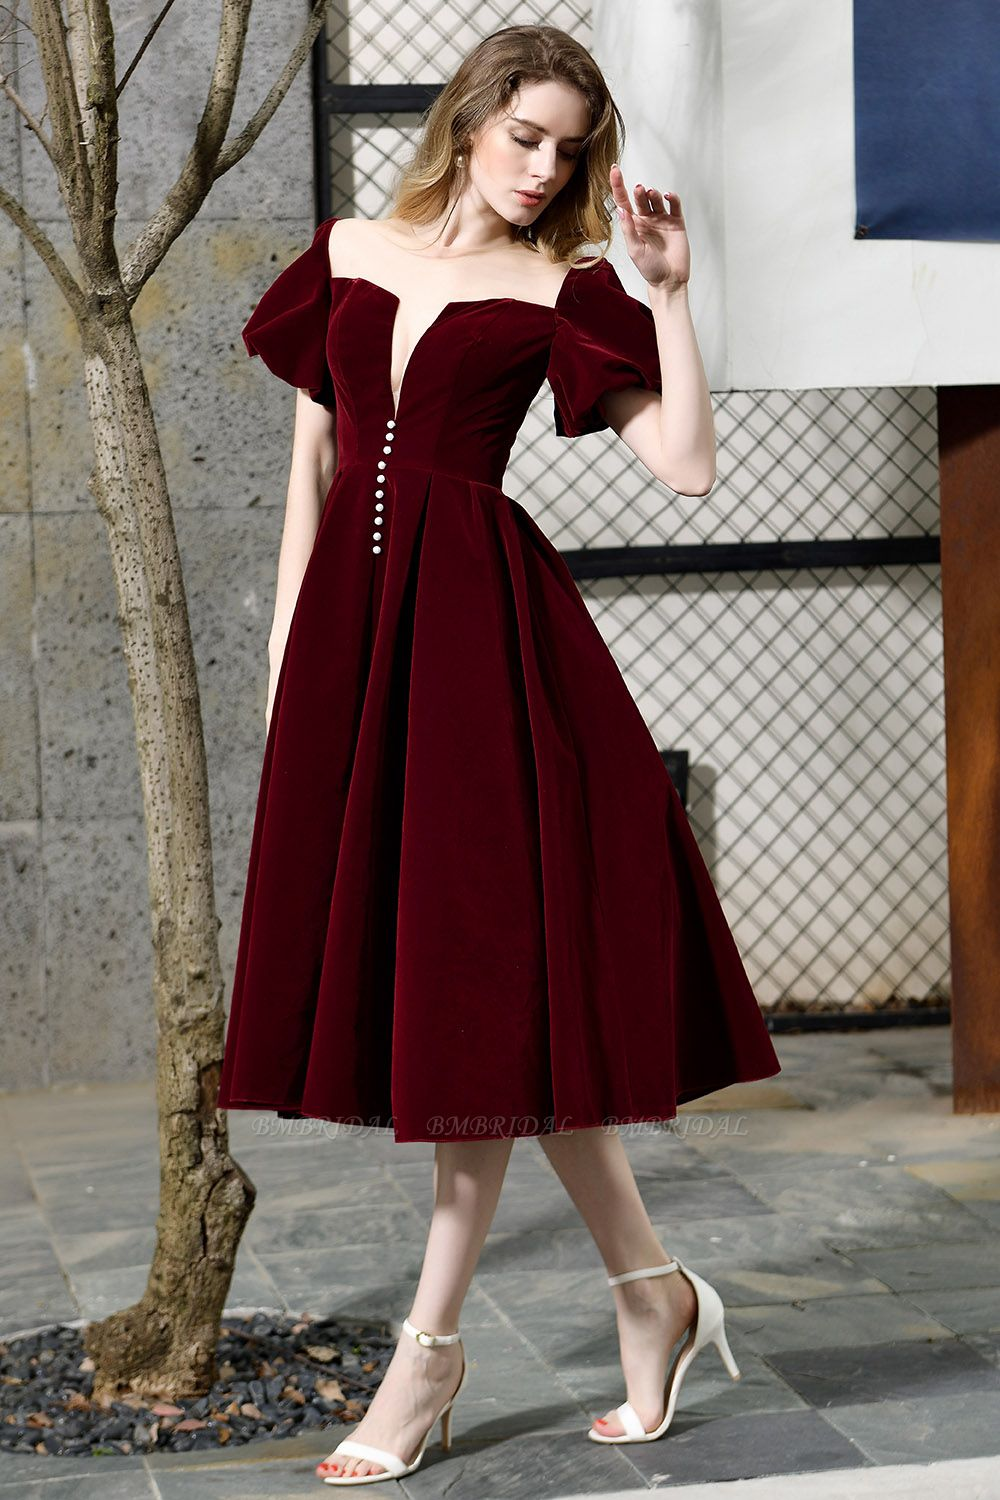 Vintage Bugrundy Short Sleeve Prom Dress Tea-Length Party Gowns With Lace-up